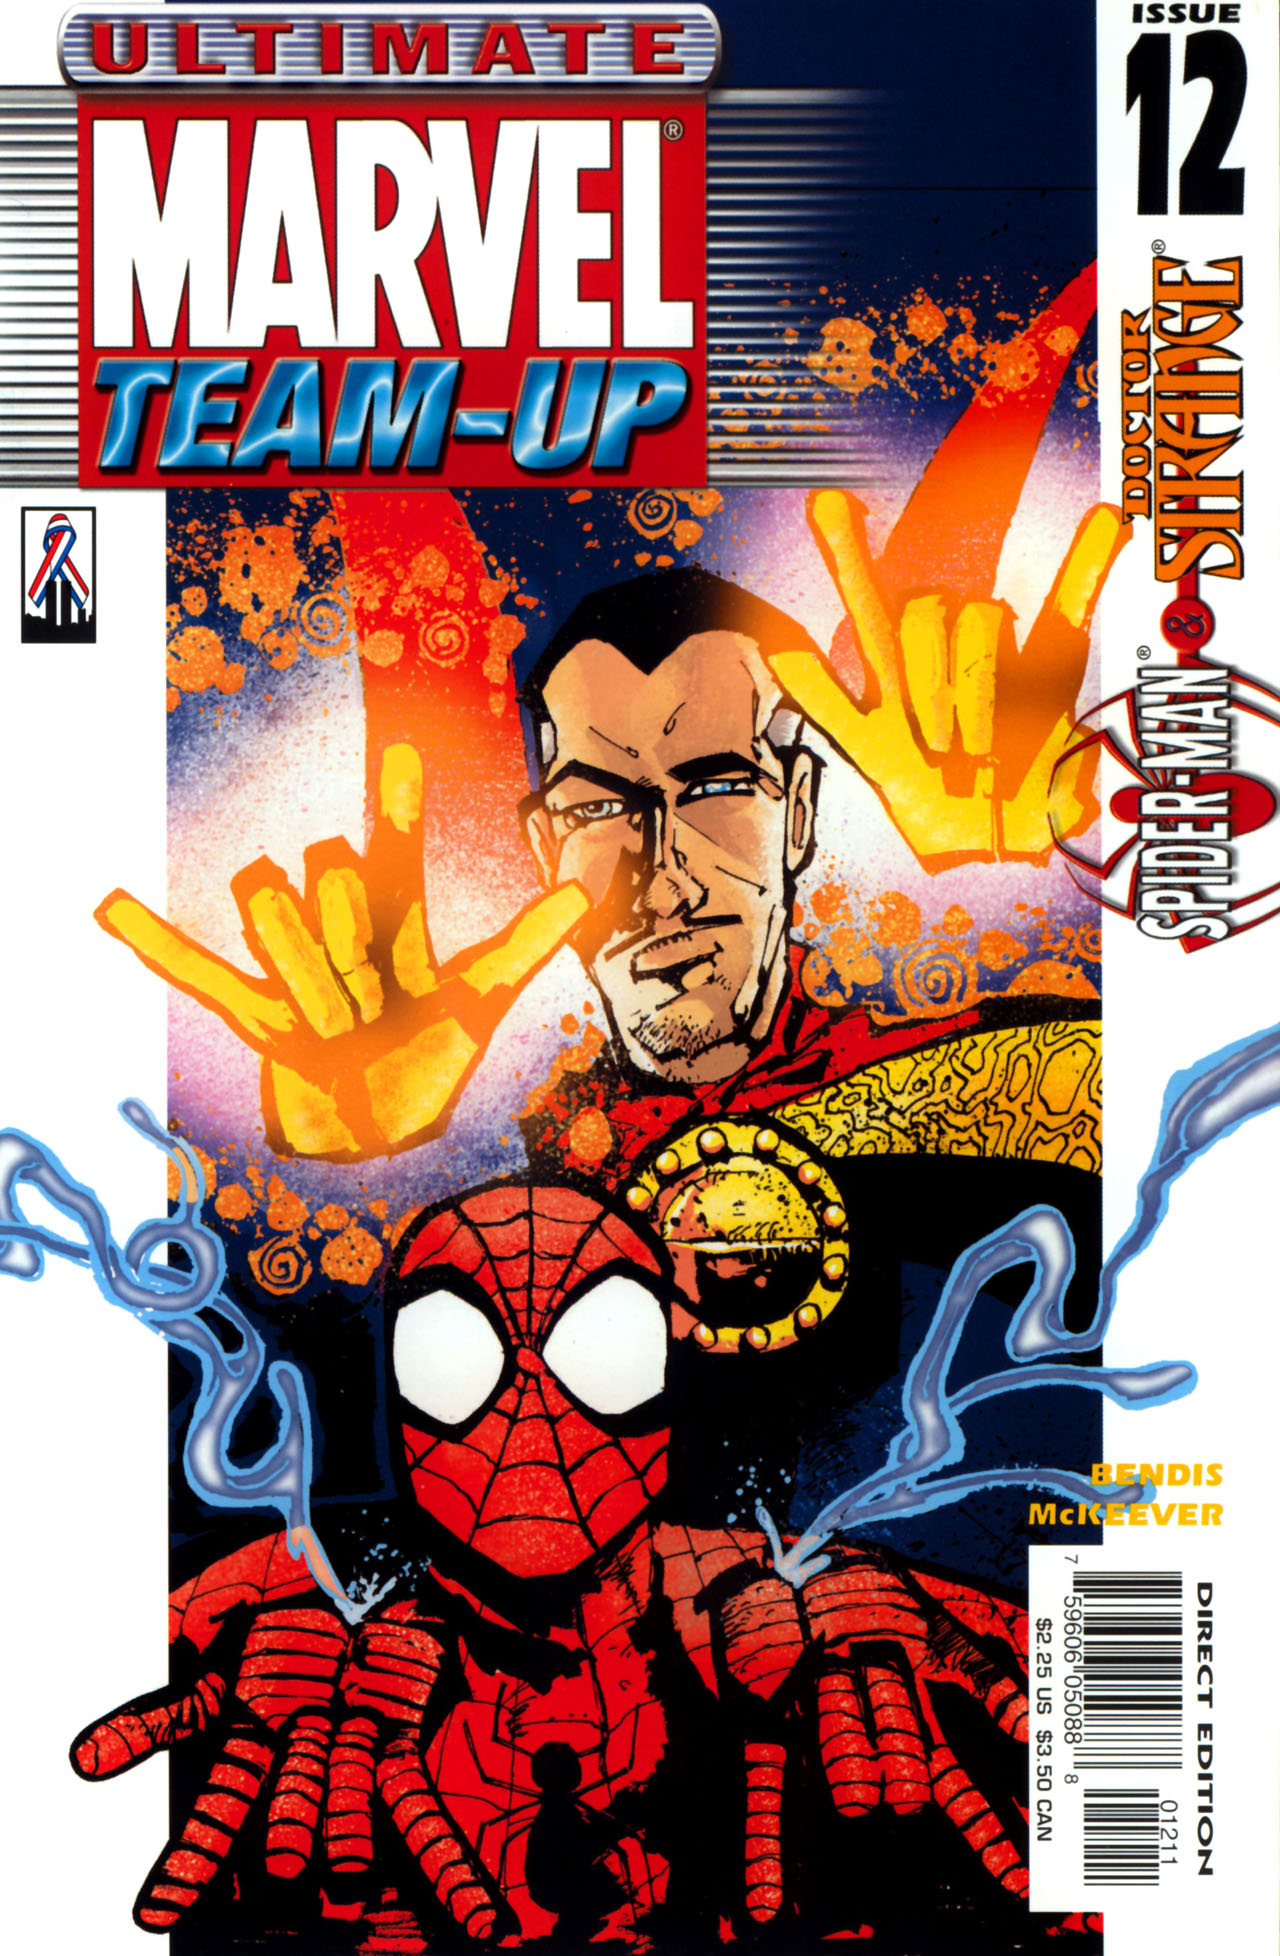 Read online Ultimate Marvel Team-Up comic -  Issue #12 - 1